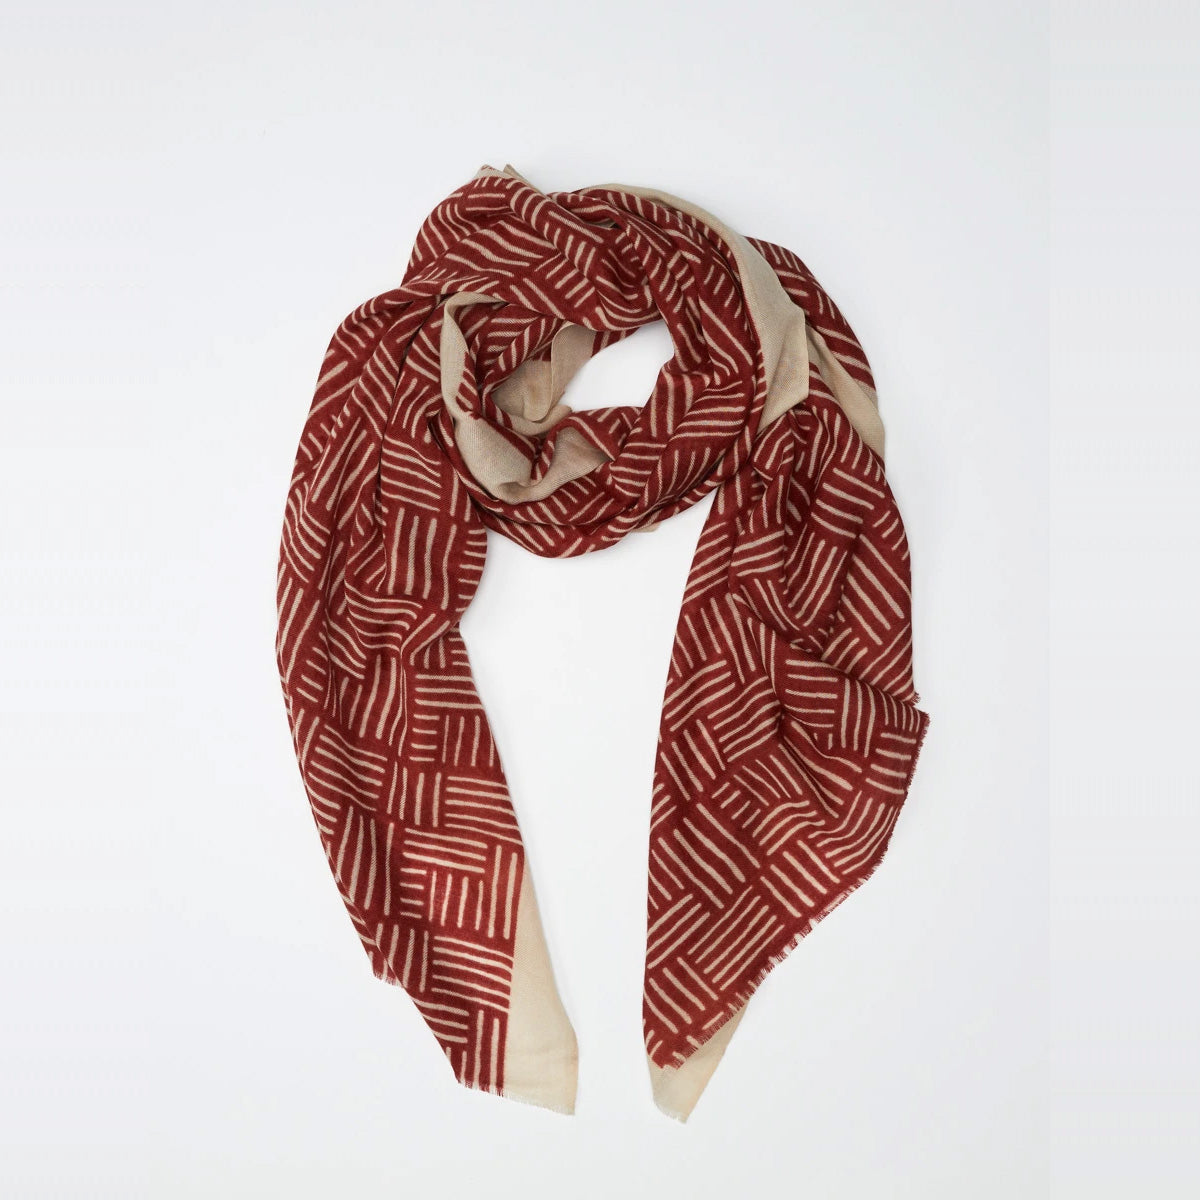 Model Wearing a Lyon - 100% Fine Merino Wool Scarf - Brick Red & Beige - Sold by Chic & Basta